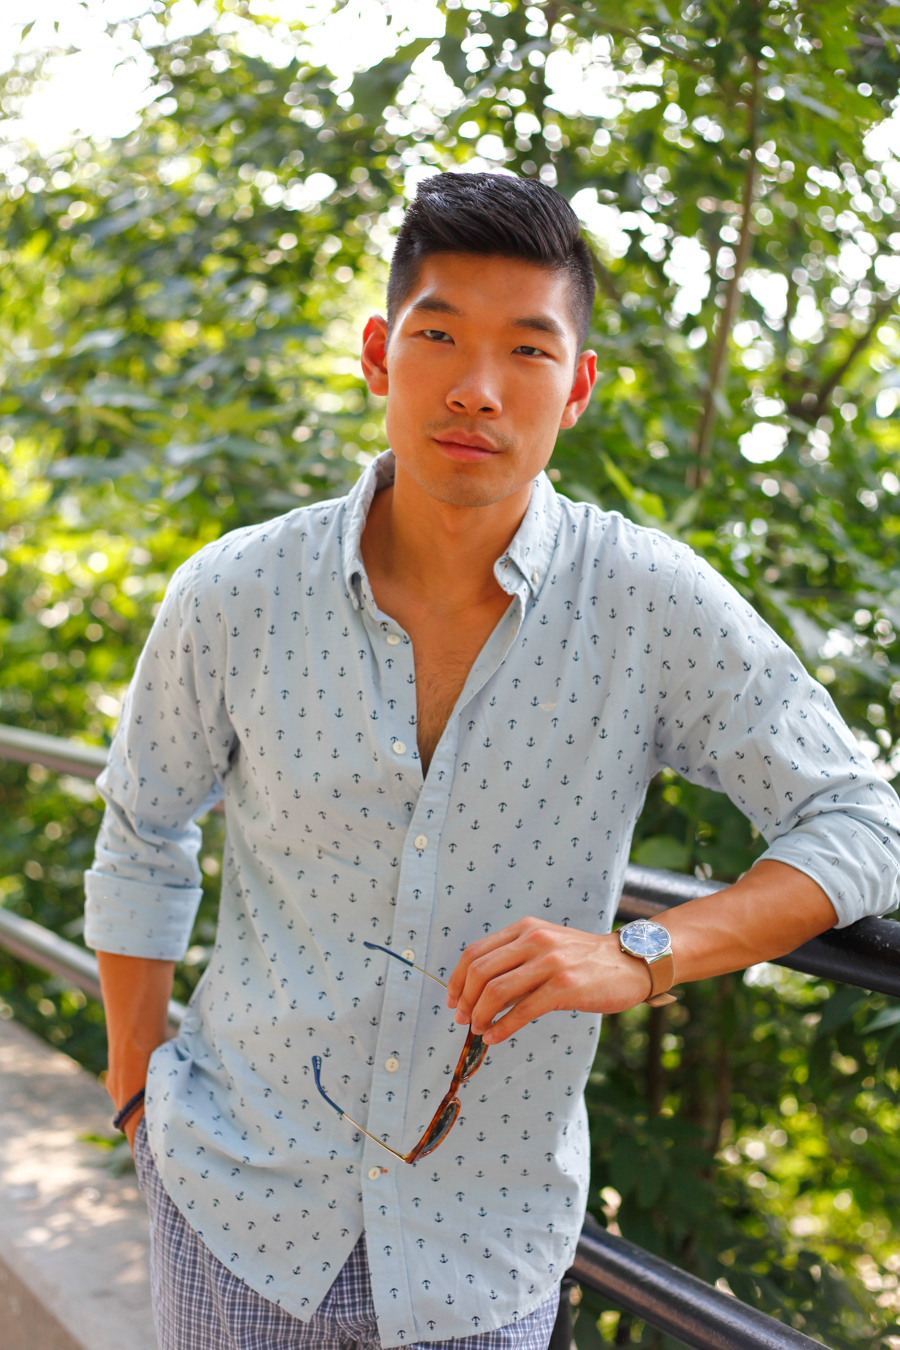 Levitate Style x JcPenney Collaboration | Summer Style Looks with Dockers